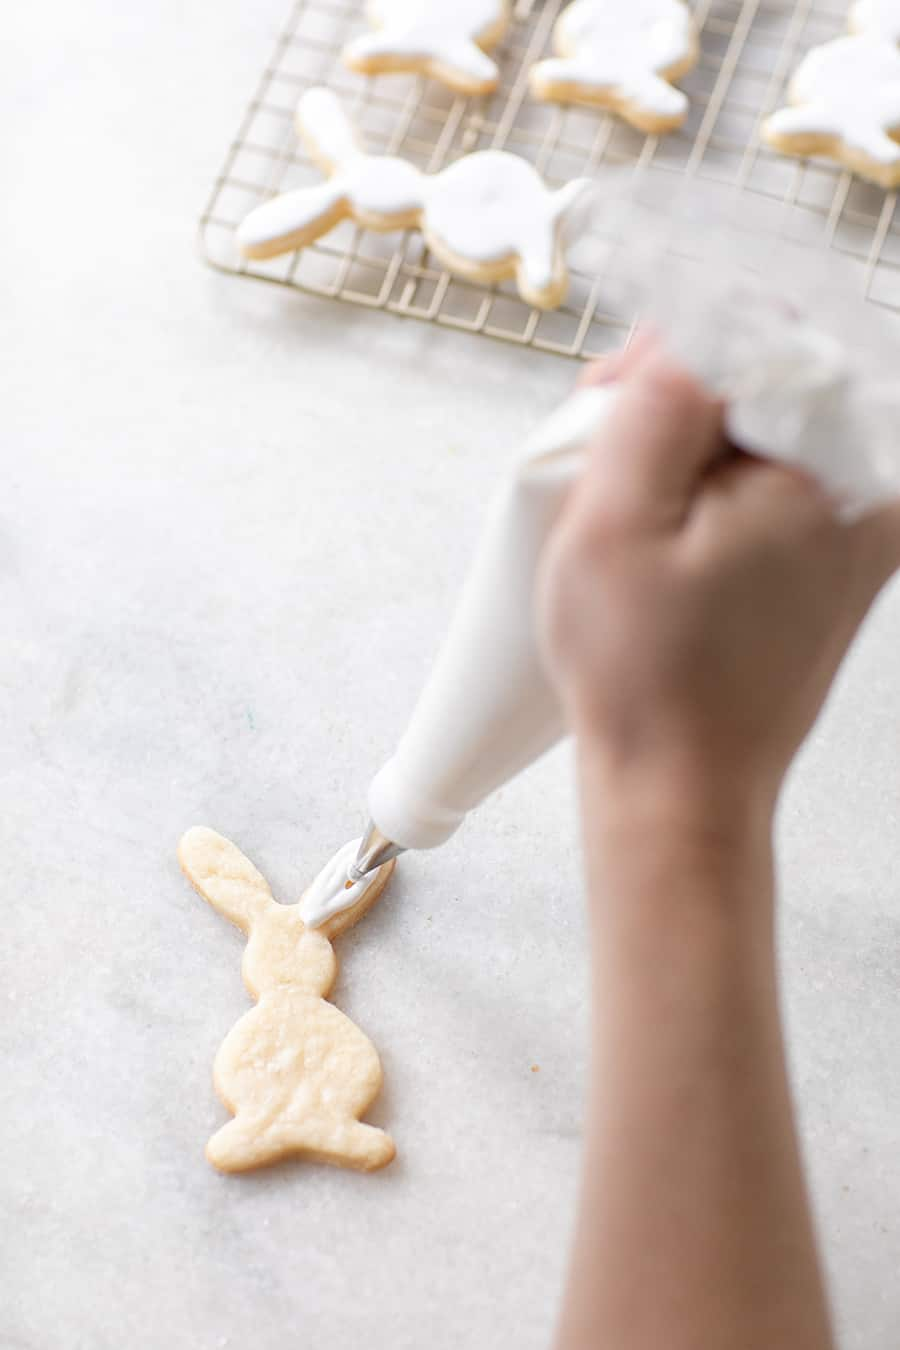 Hand frosting a bunny shaped Easter cookie.